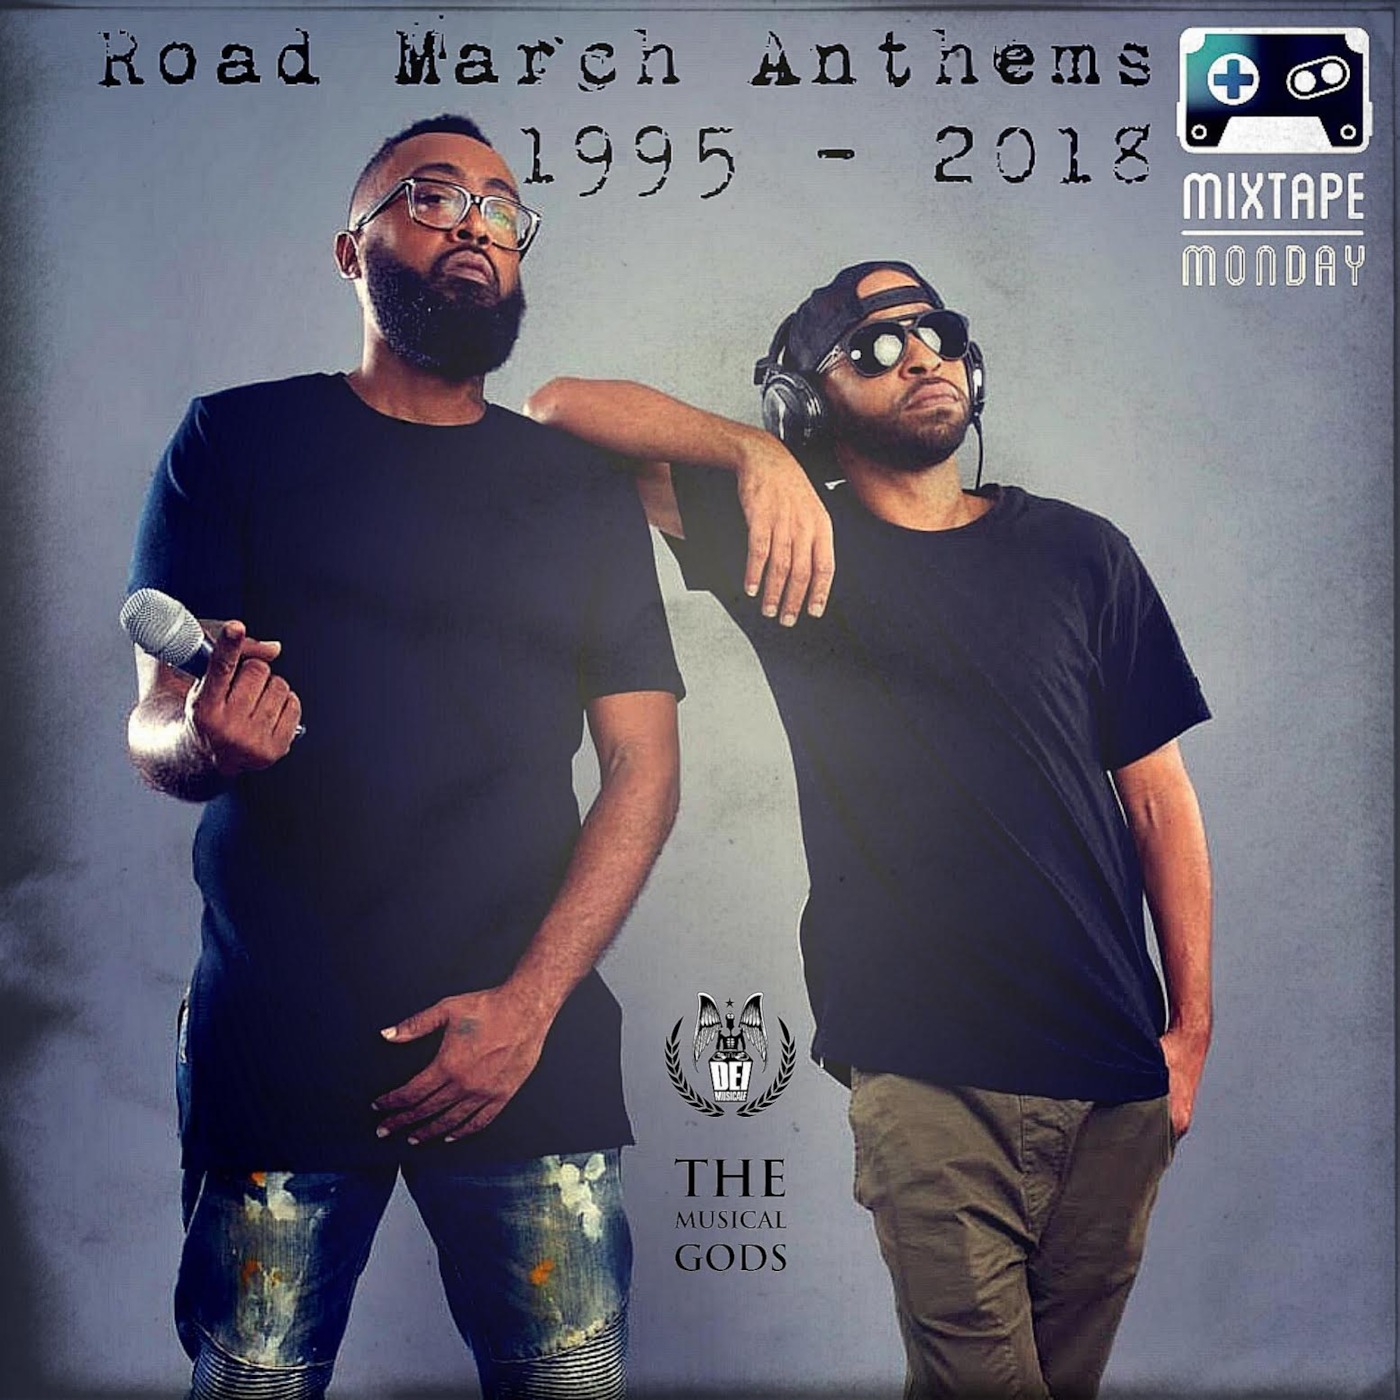 Road March Anthems #MixTapeMonday Week 5 Ruan Legend's podcast